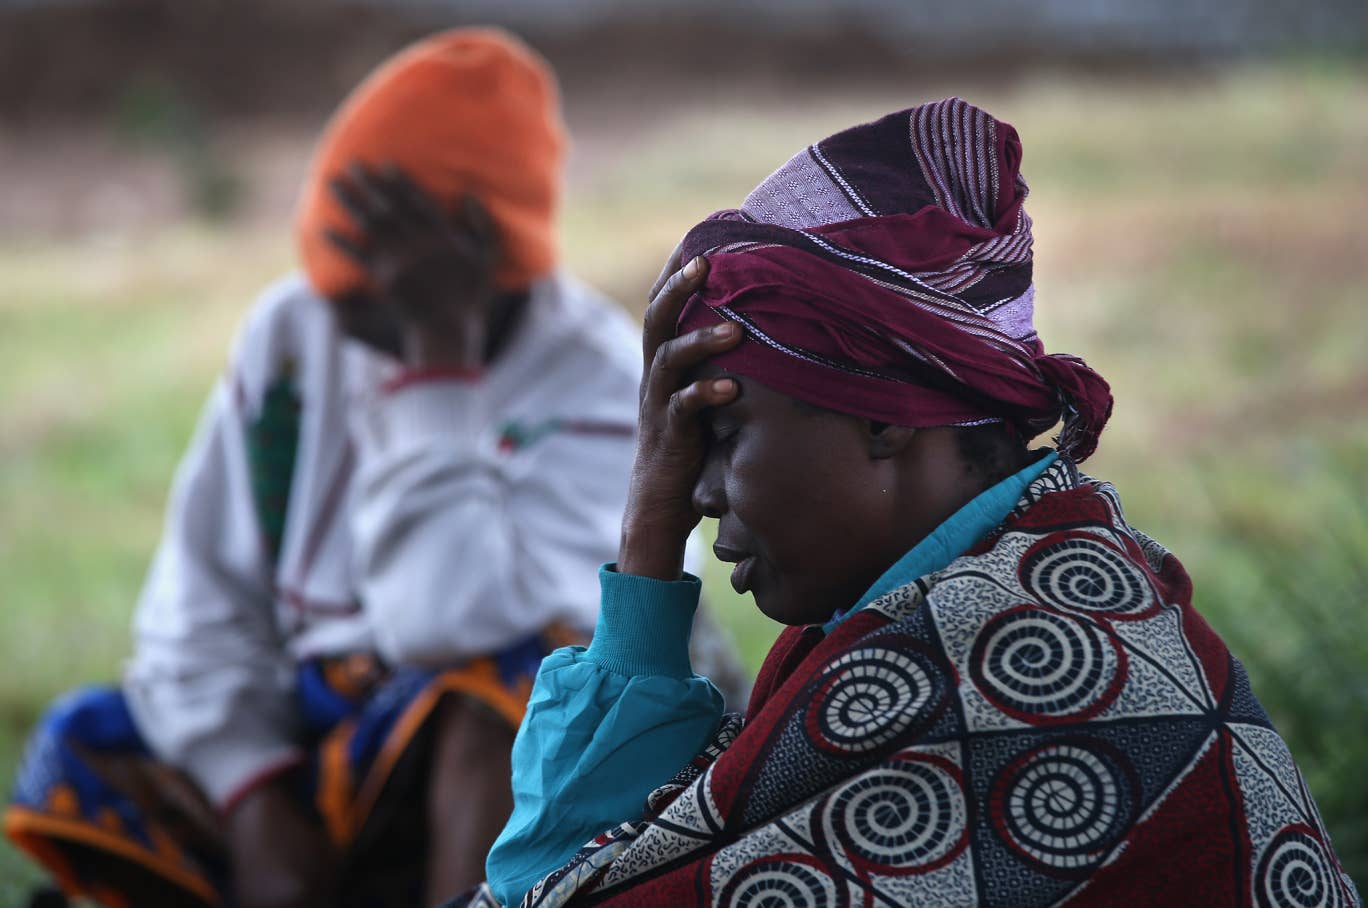 The disease, which has claimed the lives of at least 1,229 people across Guinea, Liberia, Sierra Leone and Nigeria, is disproportionality infecting women as the outbreak spreads across West Africa.